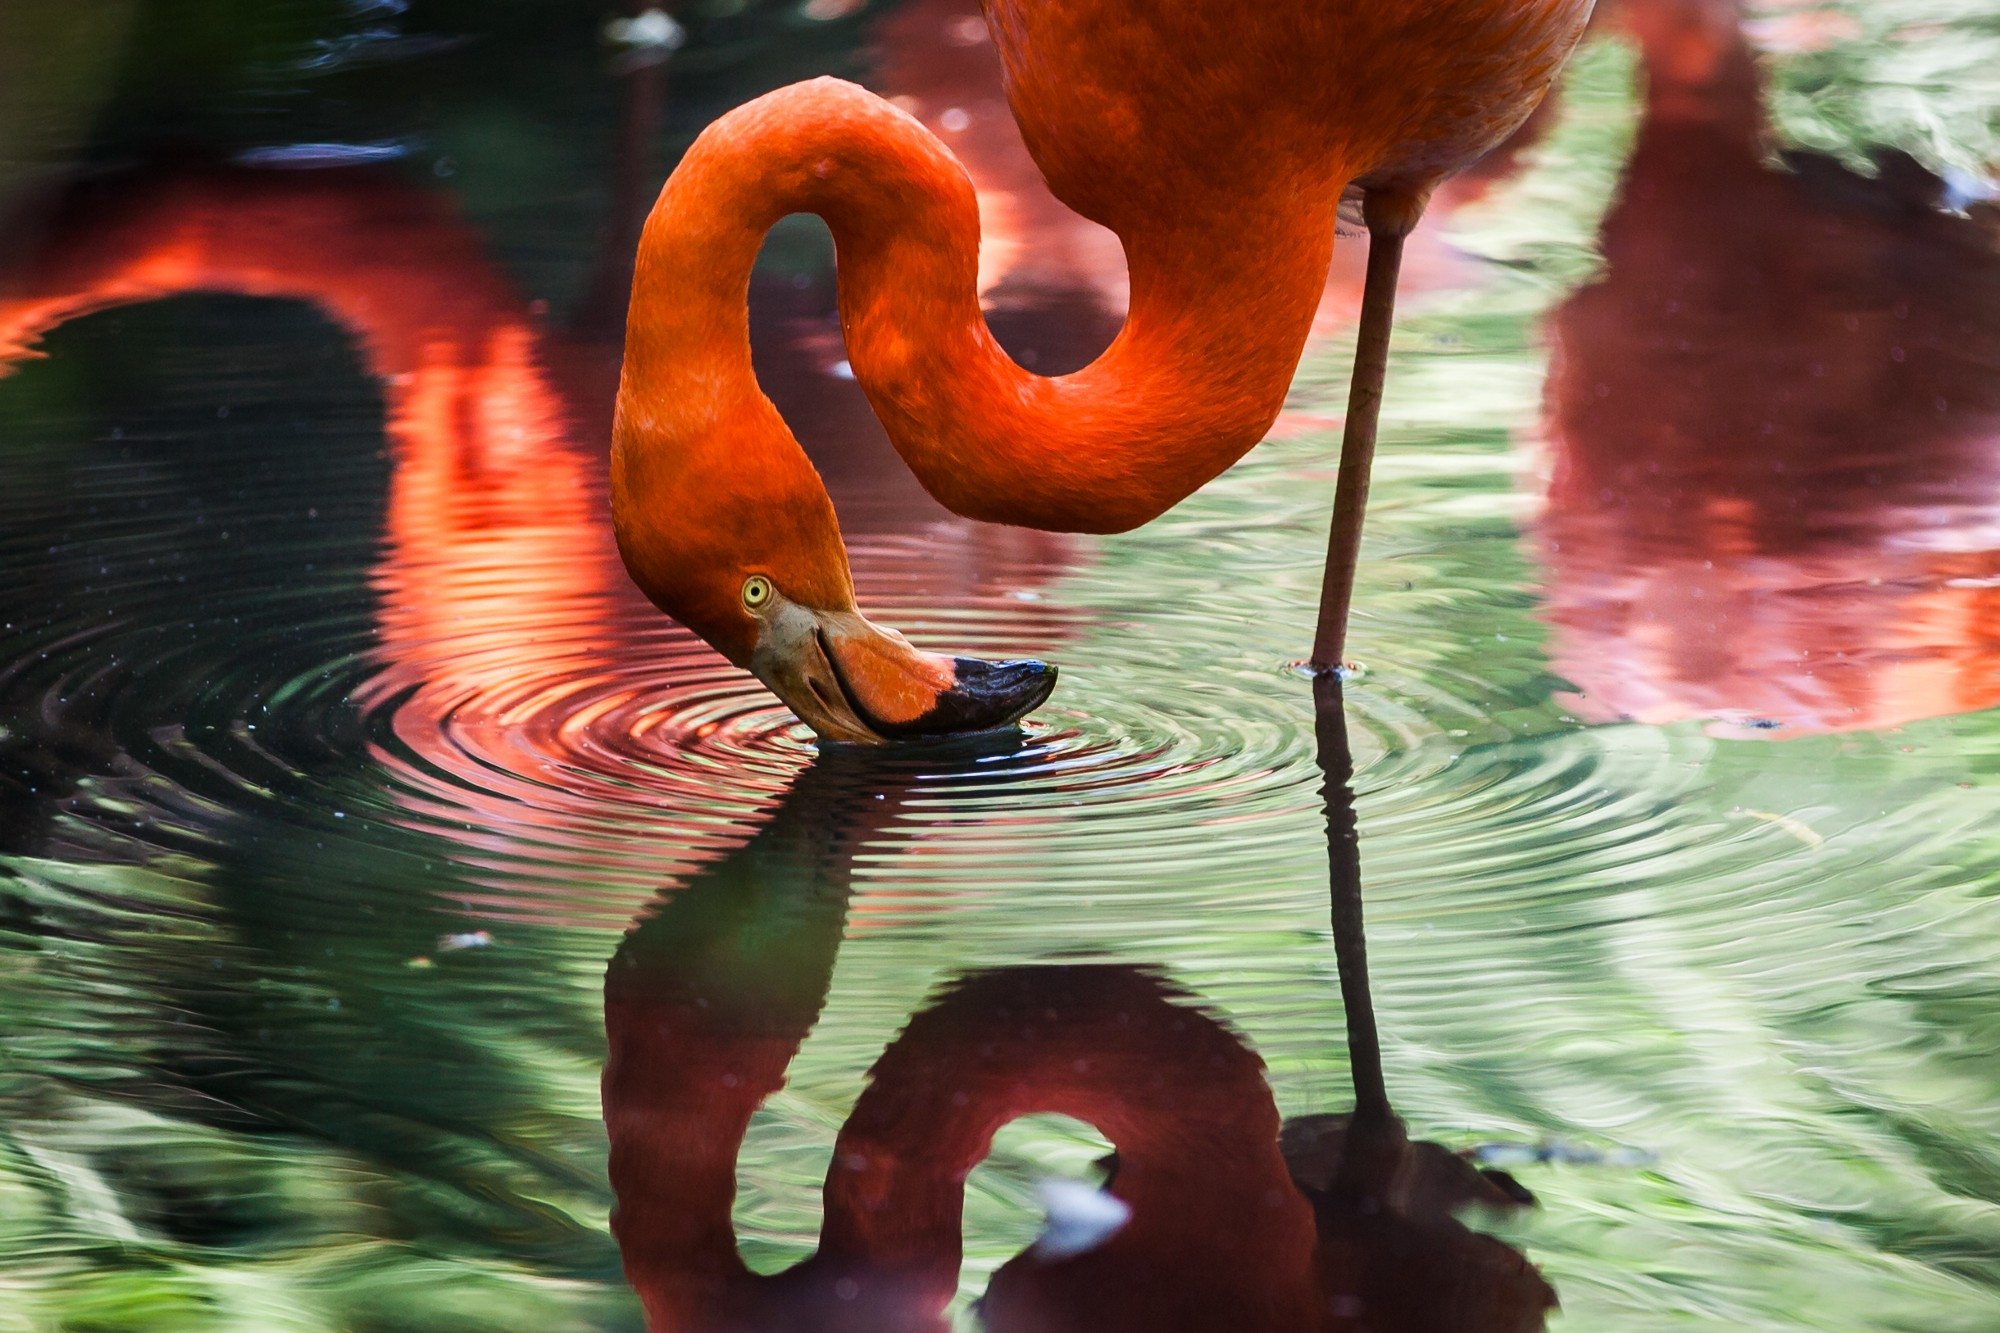 a flamingo who sees himself as reflection on water